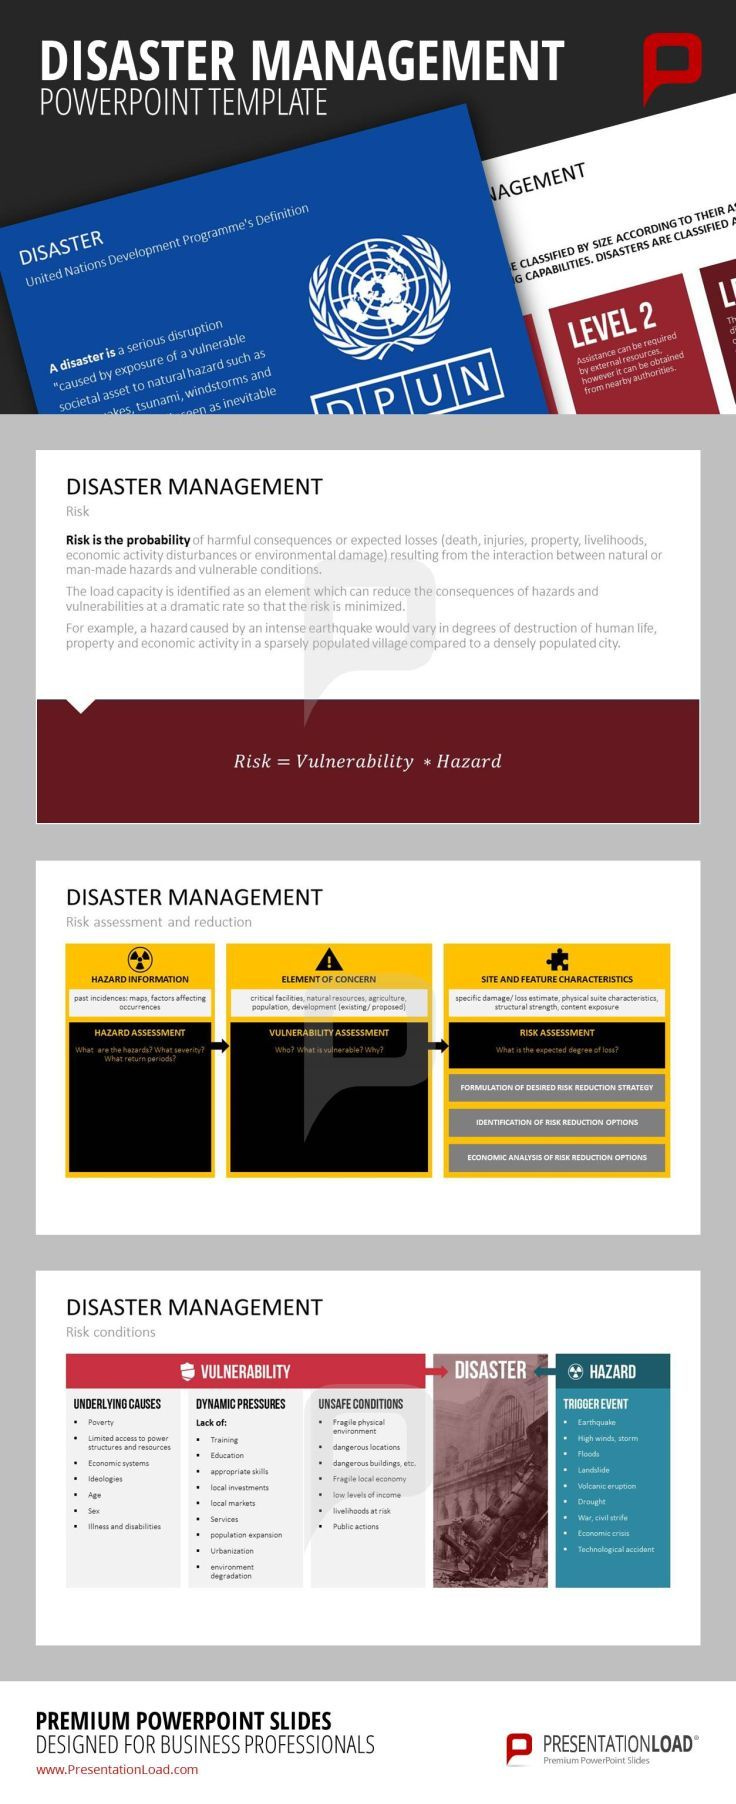 Risk Assessment Is Based On The Analysis Of Hazards And